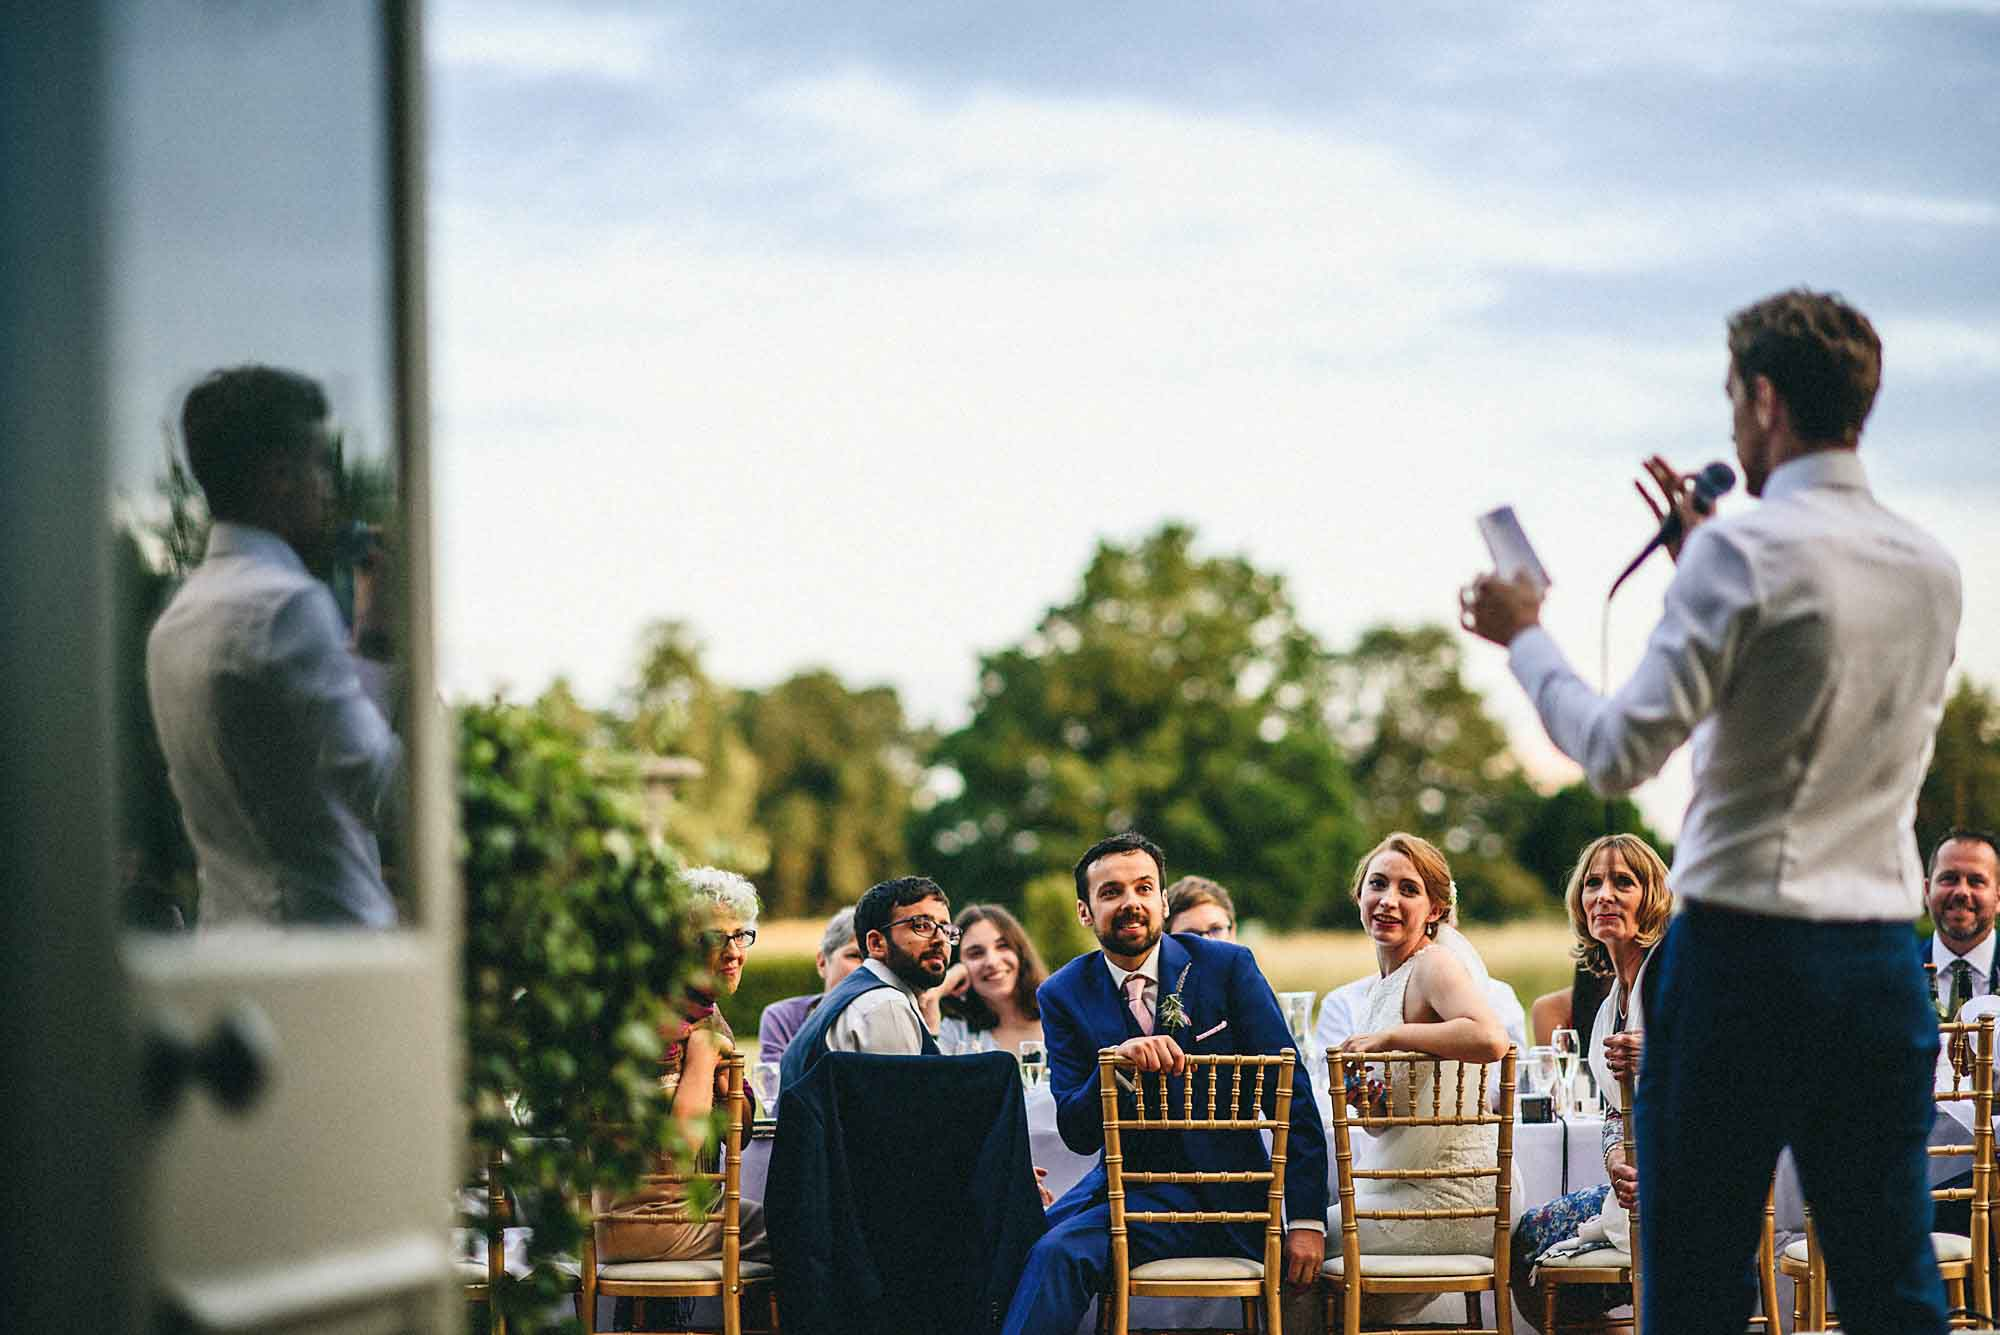 Narborough Hall Gardens wedding photography 44 Completed